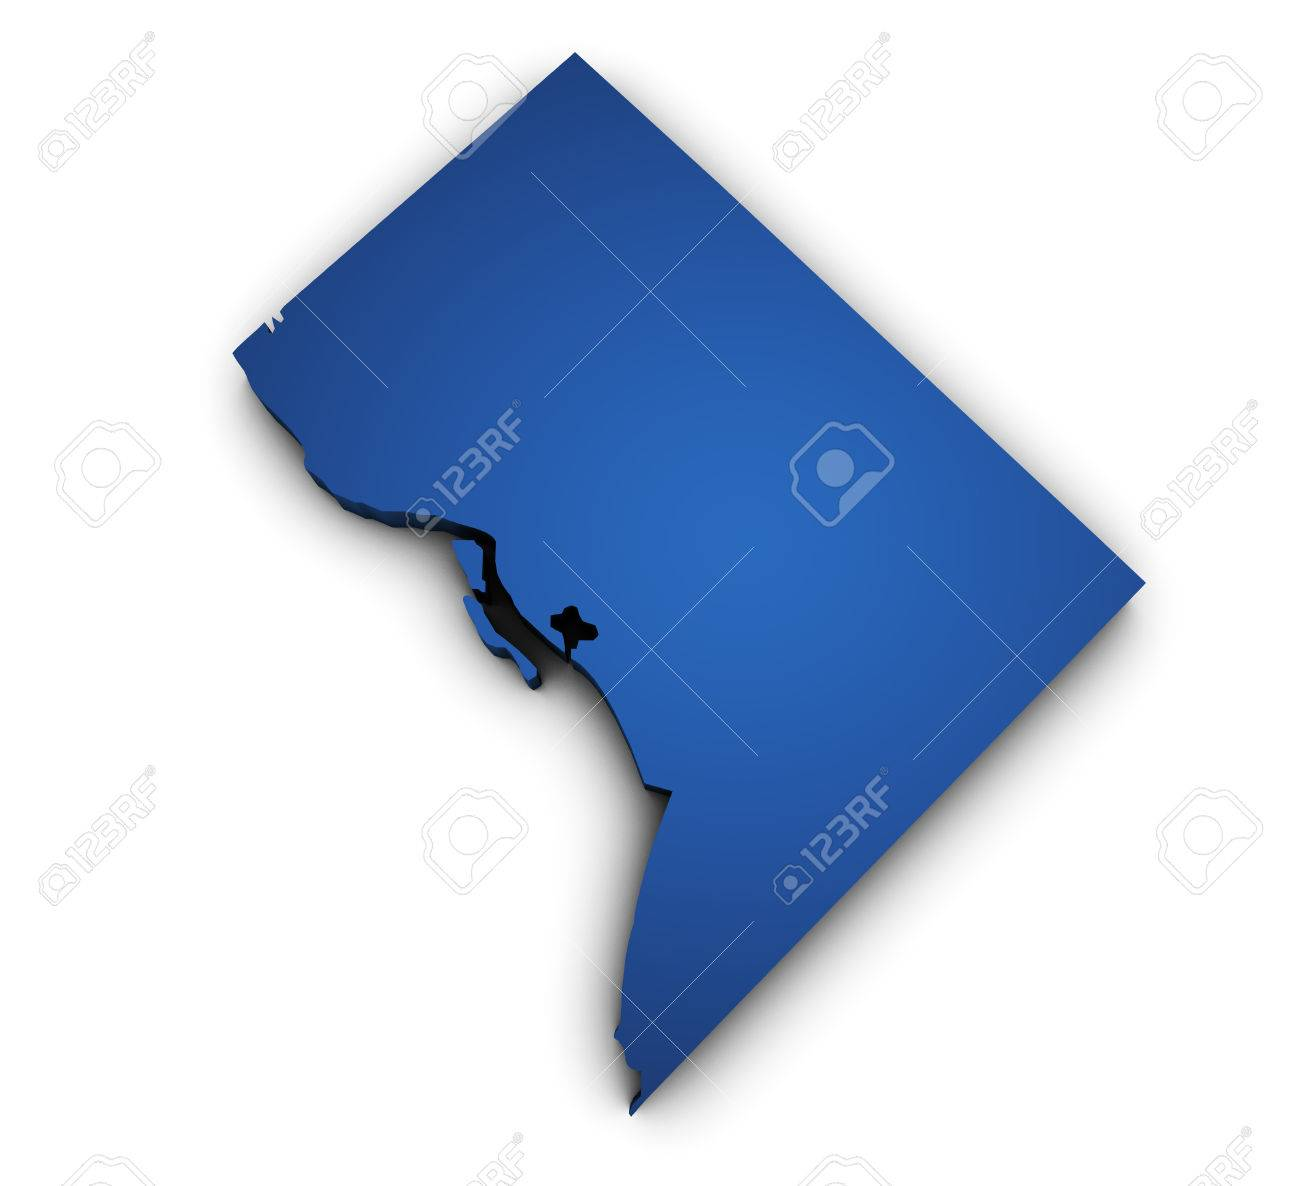 Shape D Of Washington DC Map Colored In Blue And Isolated On - Washington dc map symbol